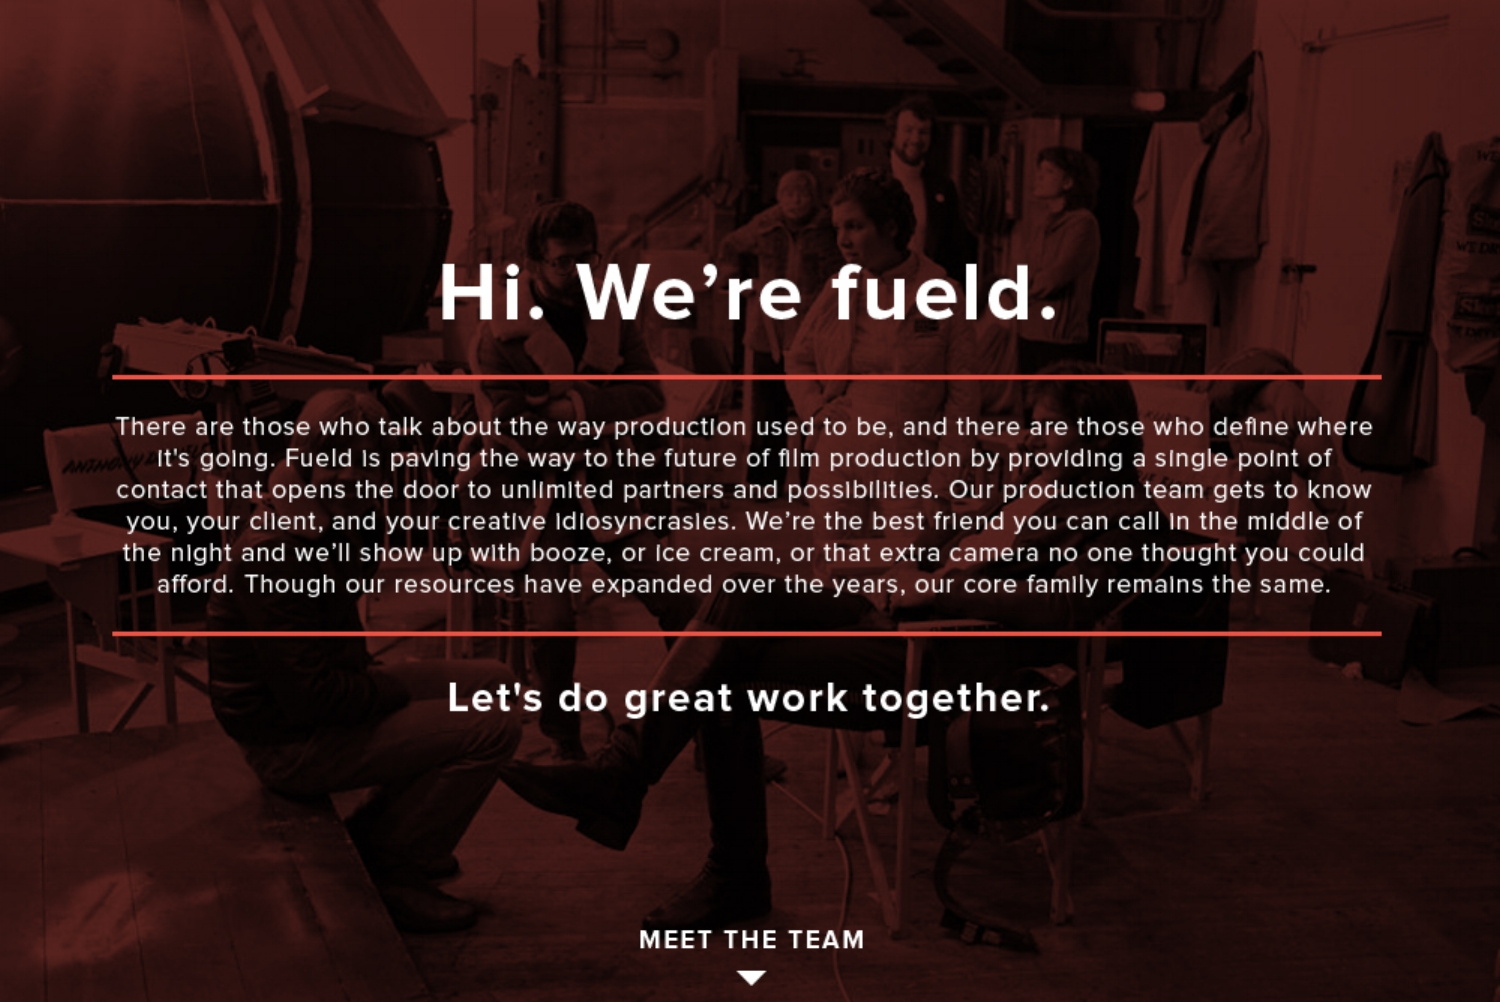 Hi, We're Fueld Films      We're hyper-local production base that connects you to directorial and post production talent from around the country.  There are those who talk about the way production used to be, and there are those who define where it's going. Our production team gets to know you, your client, and your creative idiosyncrasies. We're the best friend you can call in the middle of the night and we'll show up with booze, or ice cream, or that extra camera no one thought you could afford. Though our resources have expanded over the years, our core family remains the same.     Let's do great work together.